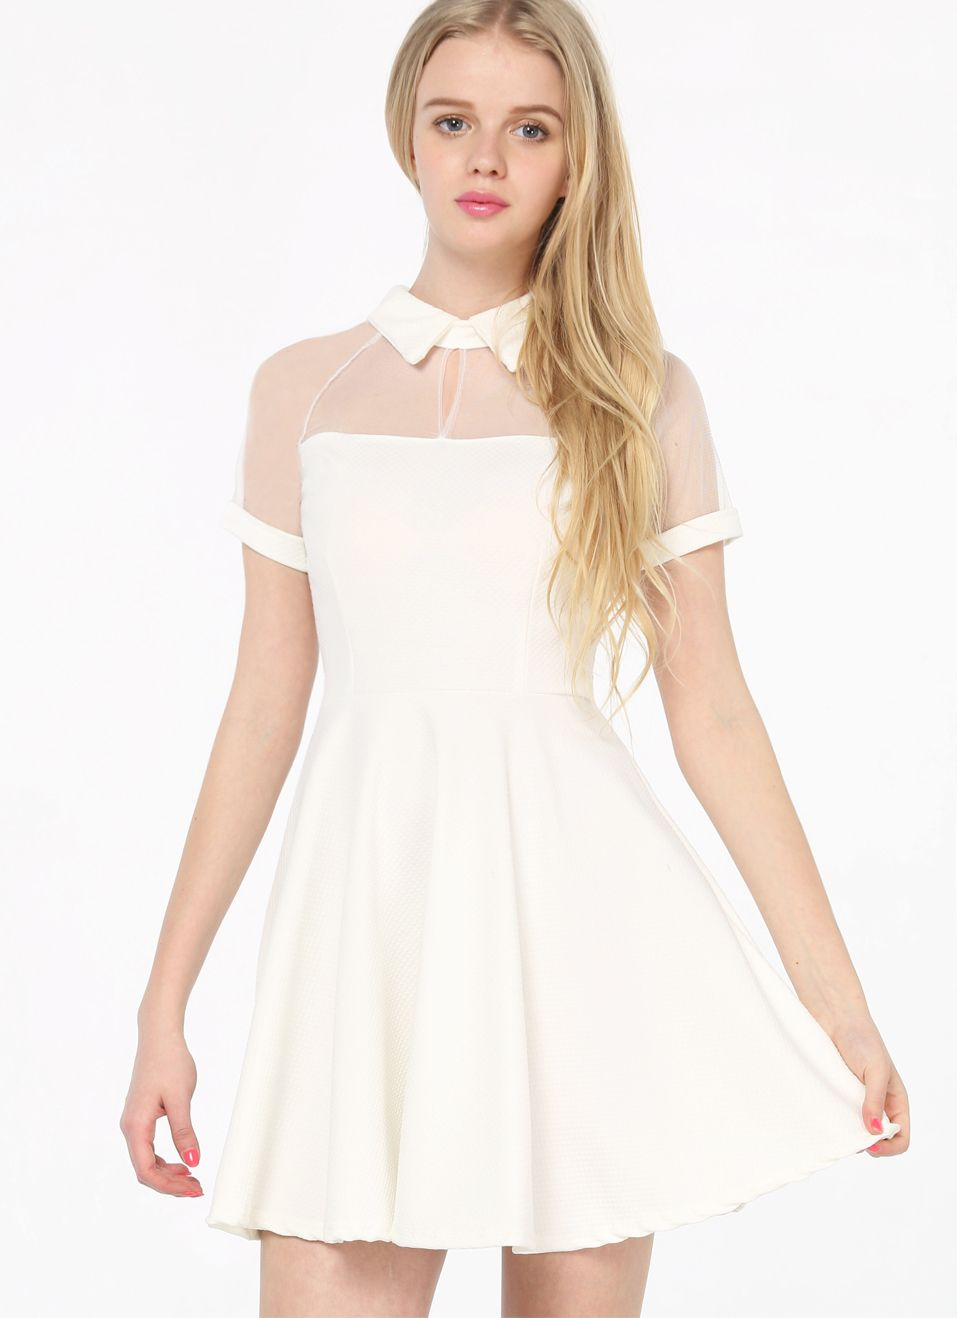 c816b48a3e White Short Sleeve Mesh Peak Collar Skater Dress - Up to 50% Off on  Clearance Sale   Sheinside